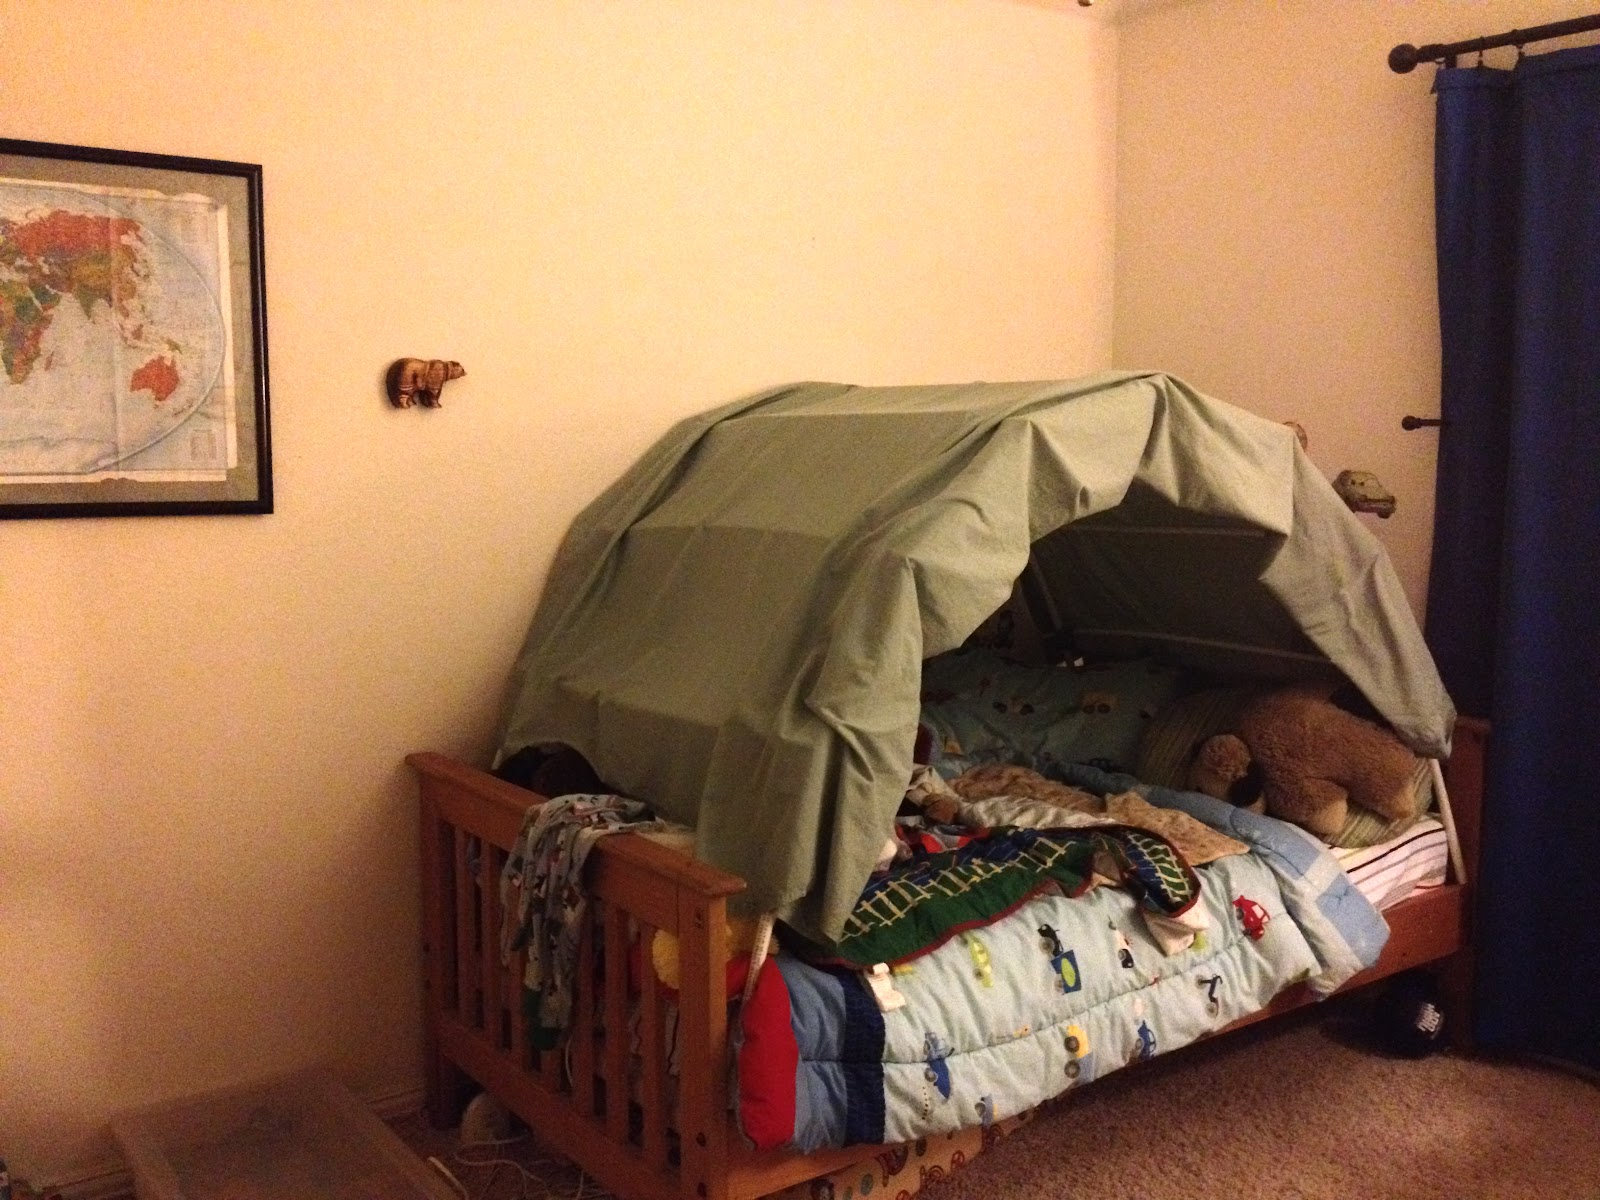 Home Made Tent Bed For Single Bed & Bella Blue Jungle: Home Made Tent Bed For Single Bed